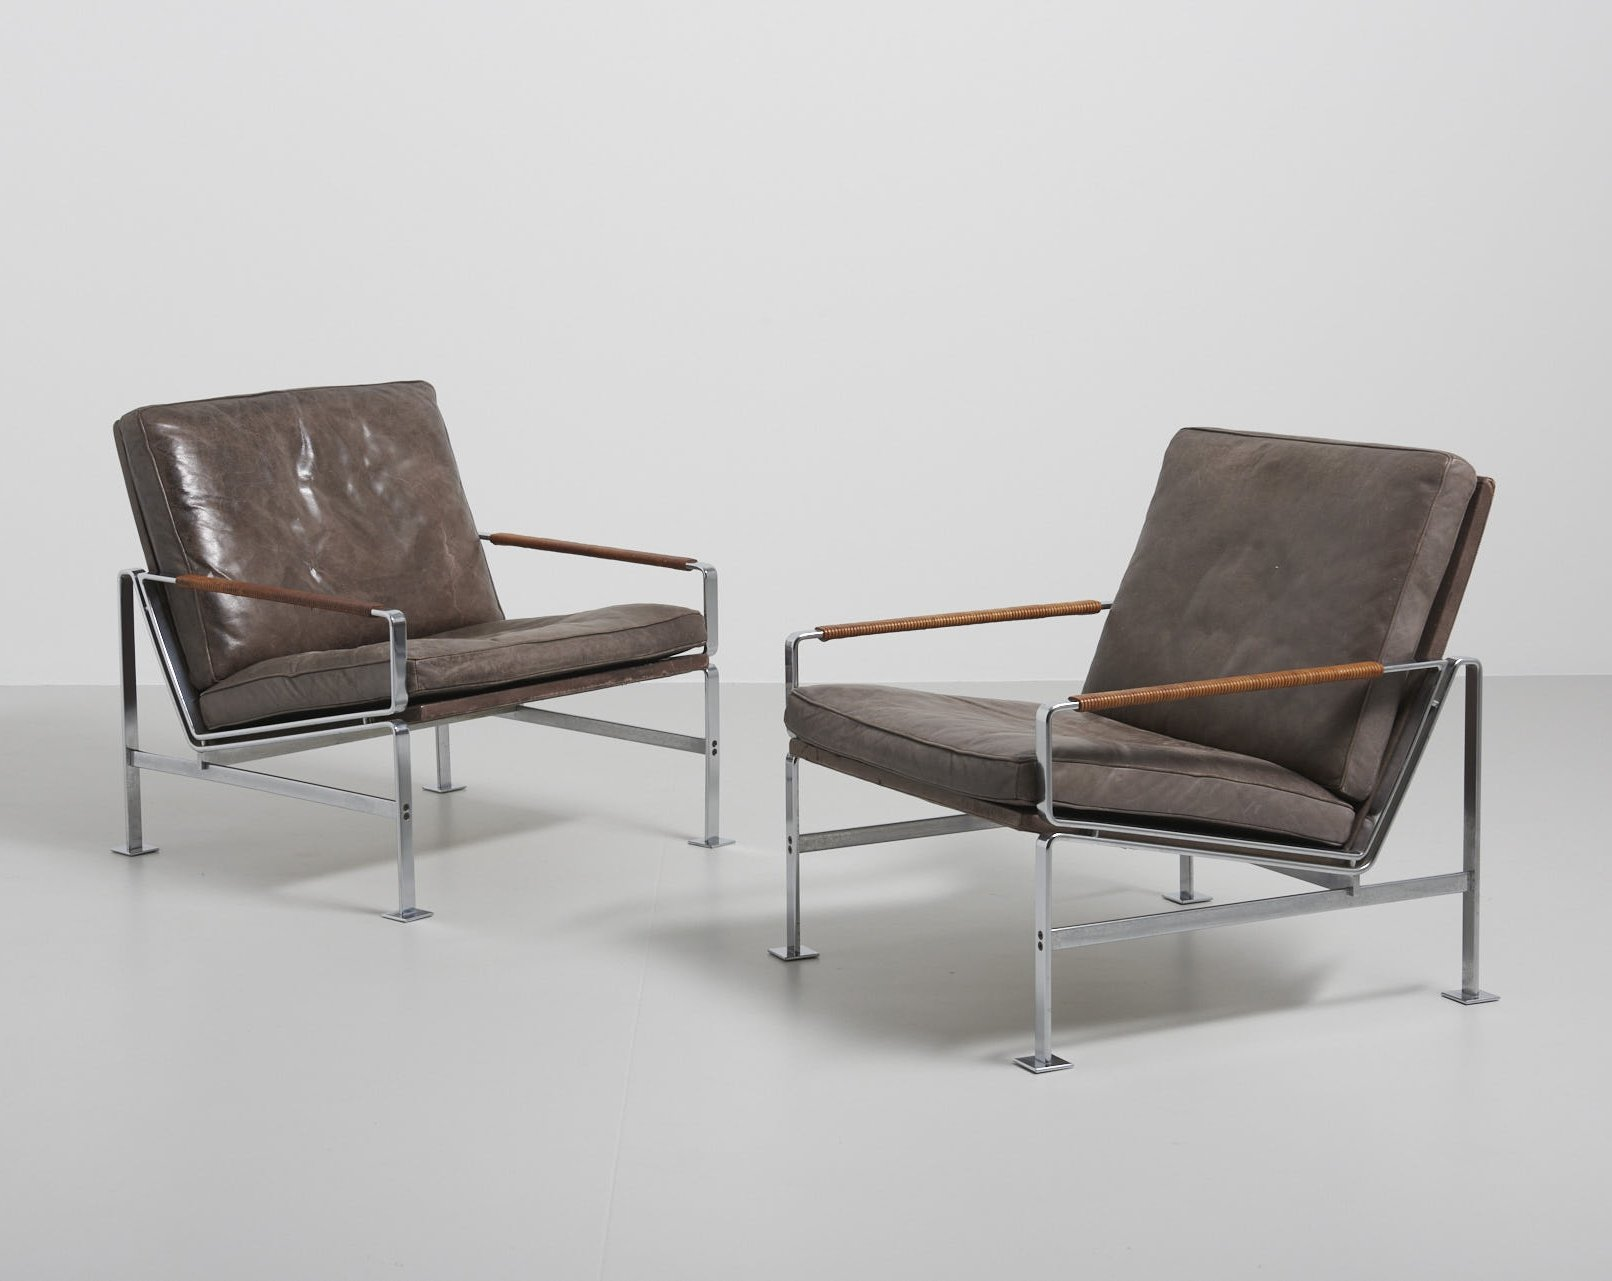 2cadcf080a45 High-end pair of  Model 6720  easy chairs by Preben Fabricius   Jørgen  Kastholm